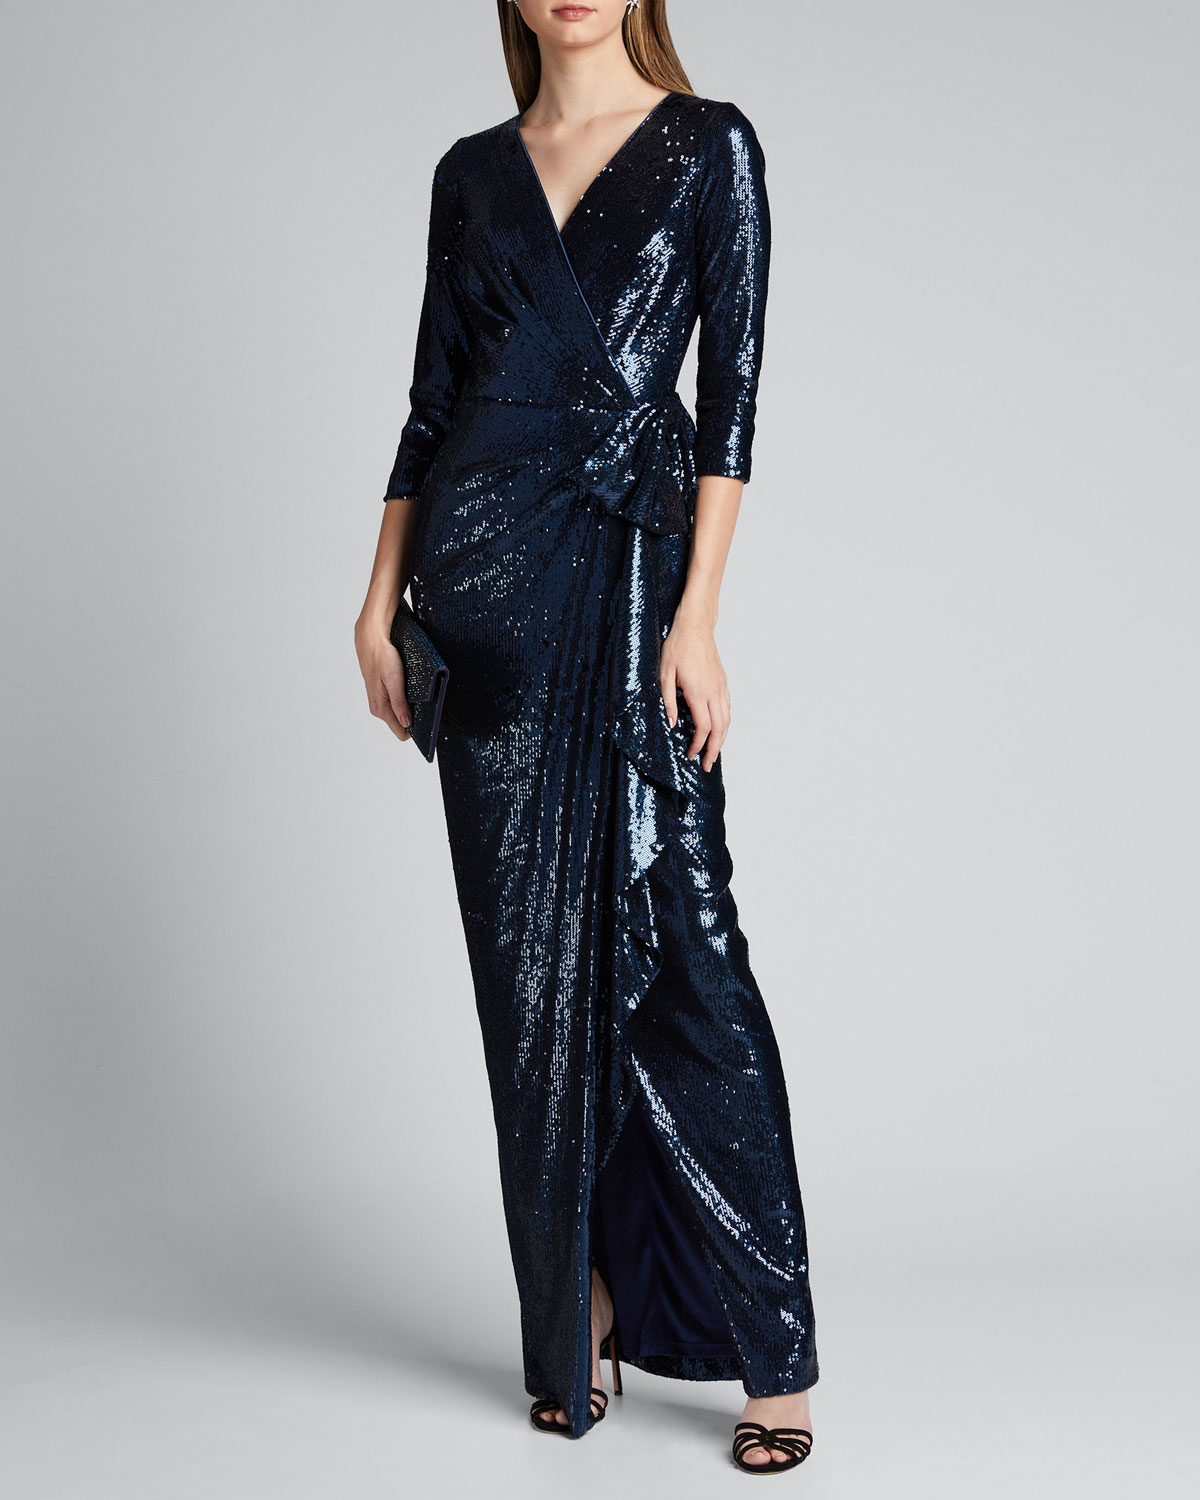 Rickie Freeman For Teri Jon  SEQUIN ELBOW-SLEEVE WRAP-FRONT COLUMN GOWN